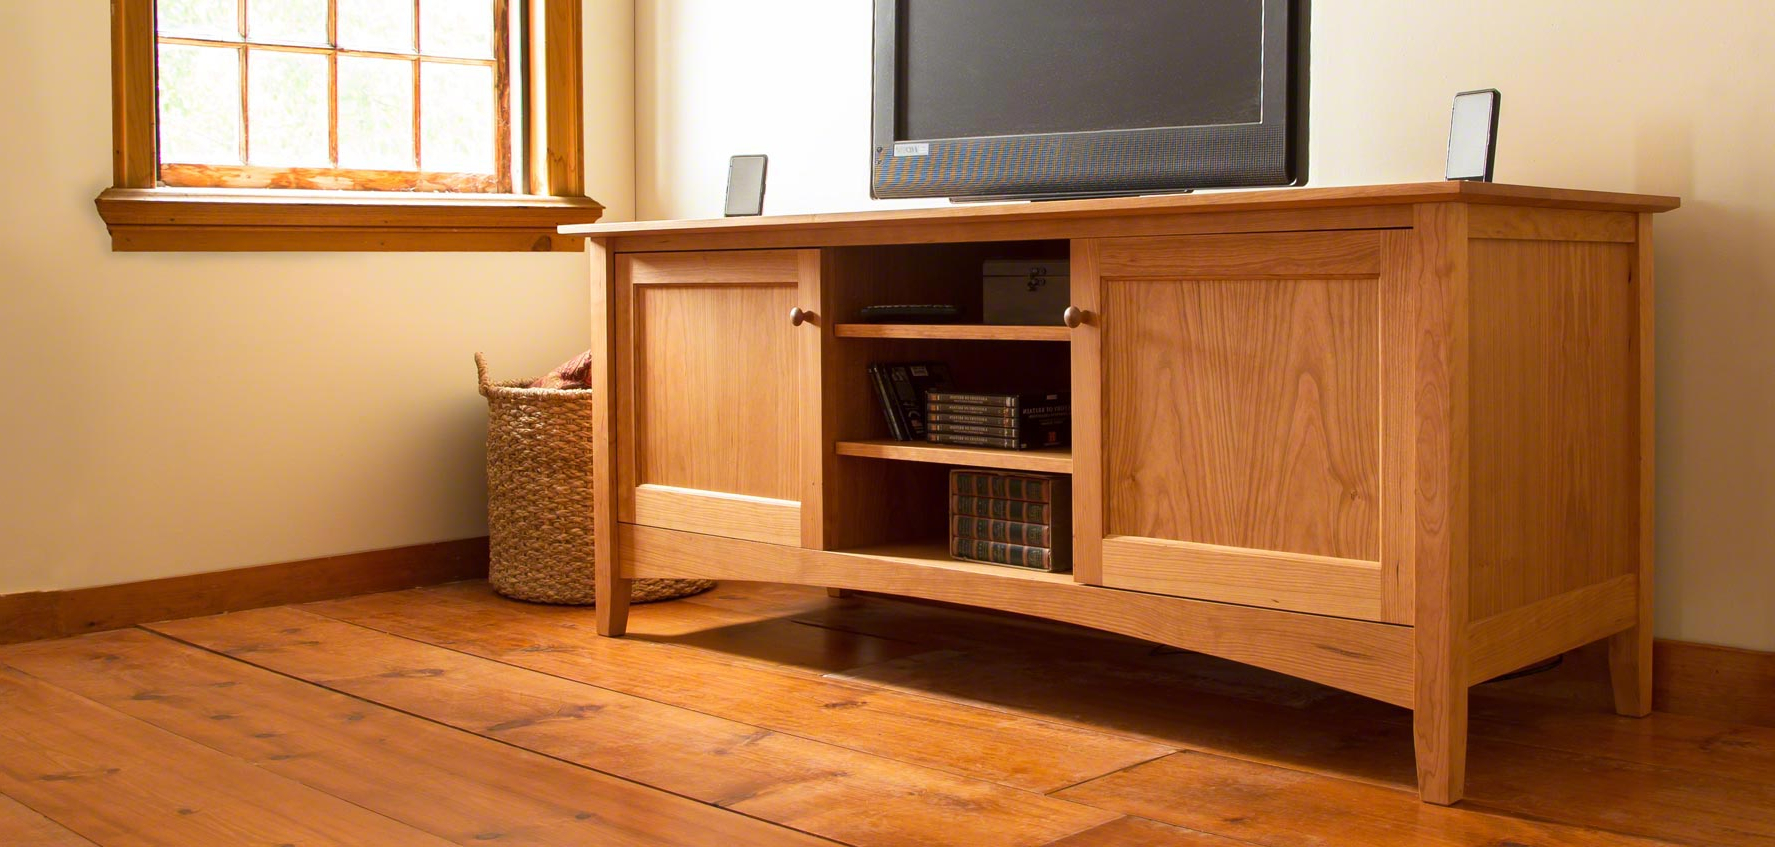 Handcrafted Wood Tv Stands & Media Consoles – Vermont Woods Studios With Most Current Hard Wood Tv Stands (Gallery 2 of 20)